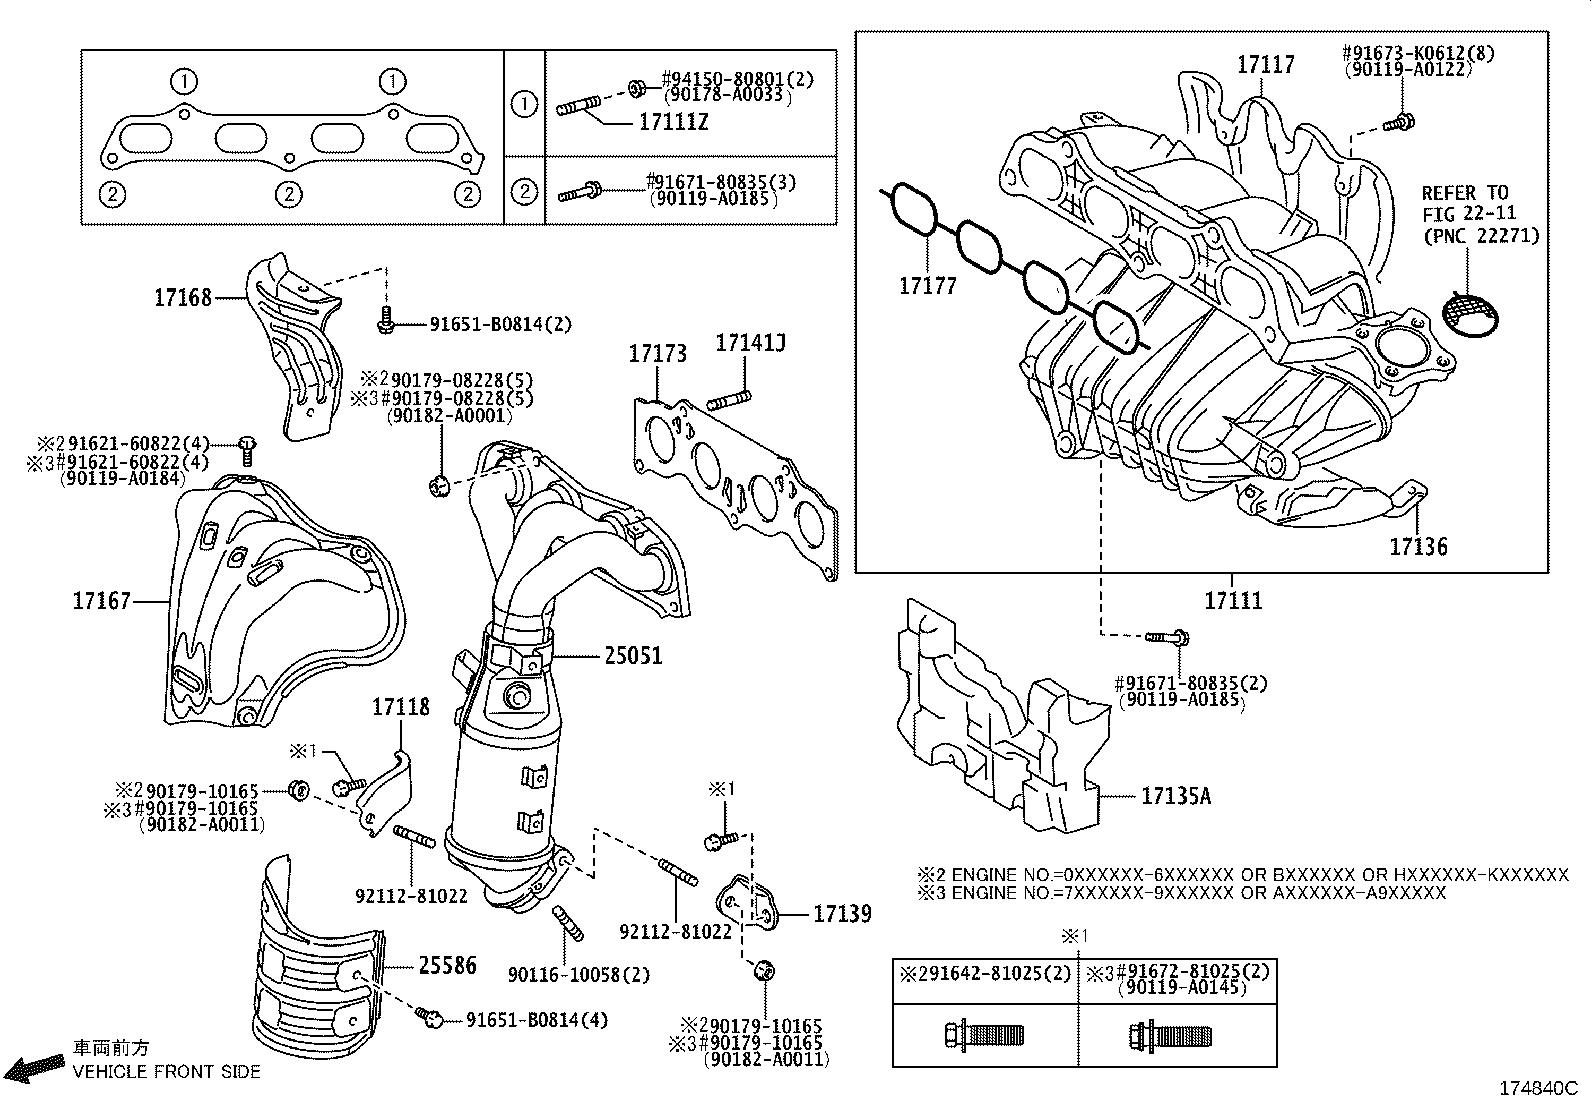 Toyota Camry Oxygen Sensor Right Manifold Exhaust